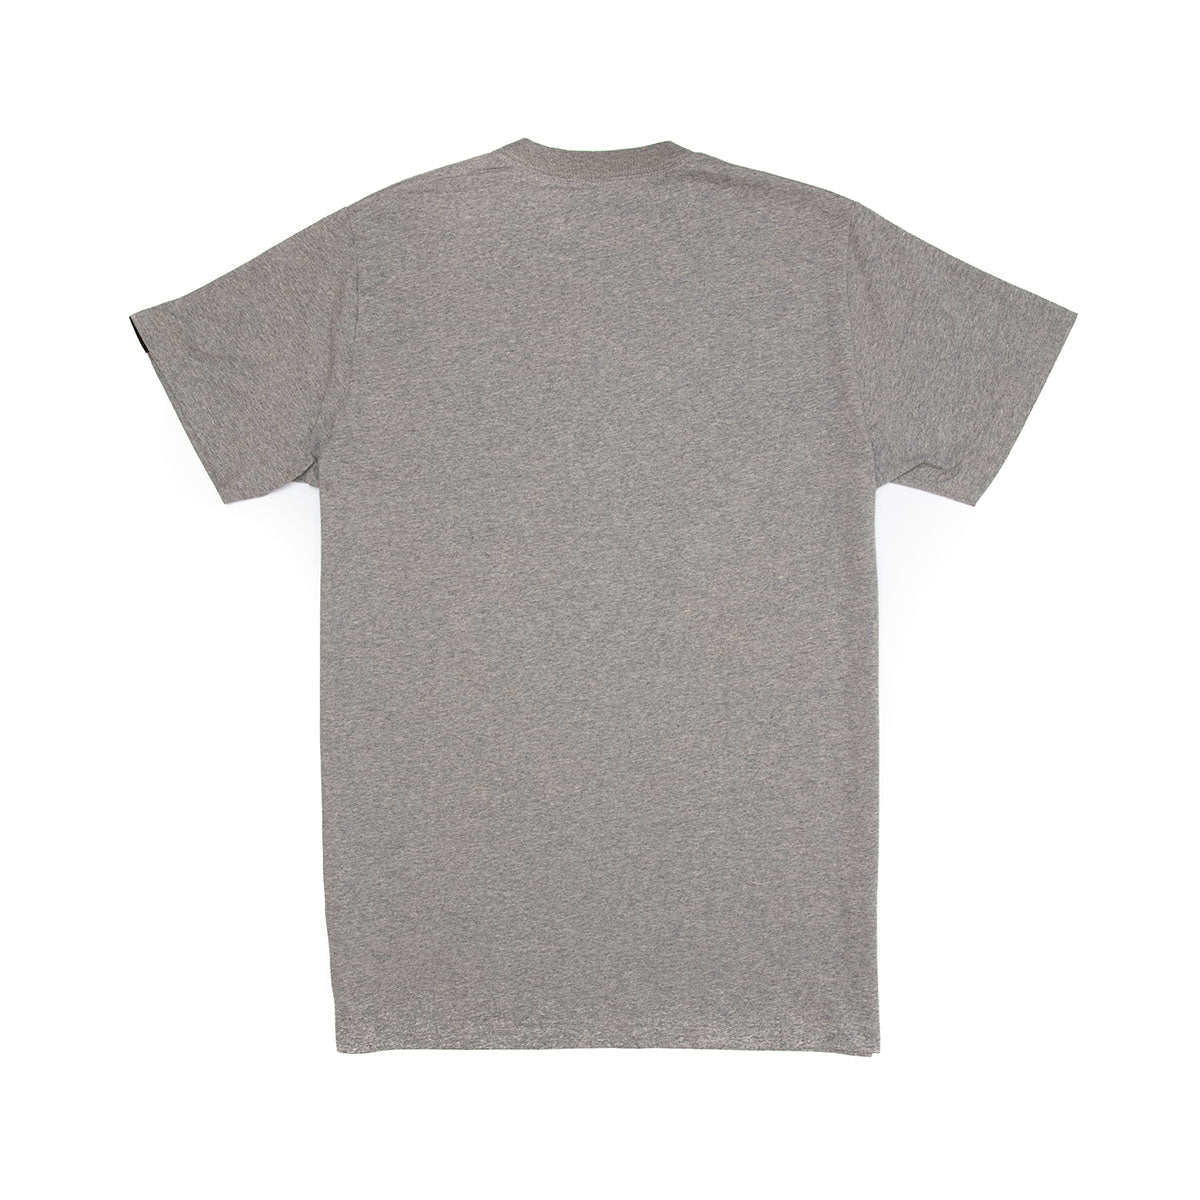 Planks Hand of Shred T-shirt (Woodsy) | Planks Clothing